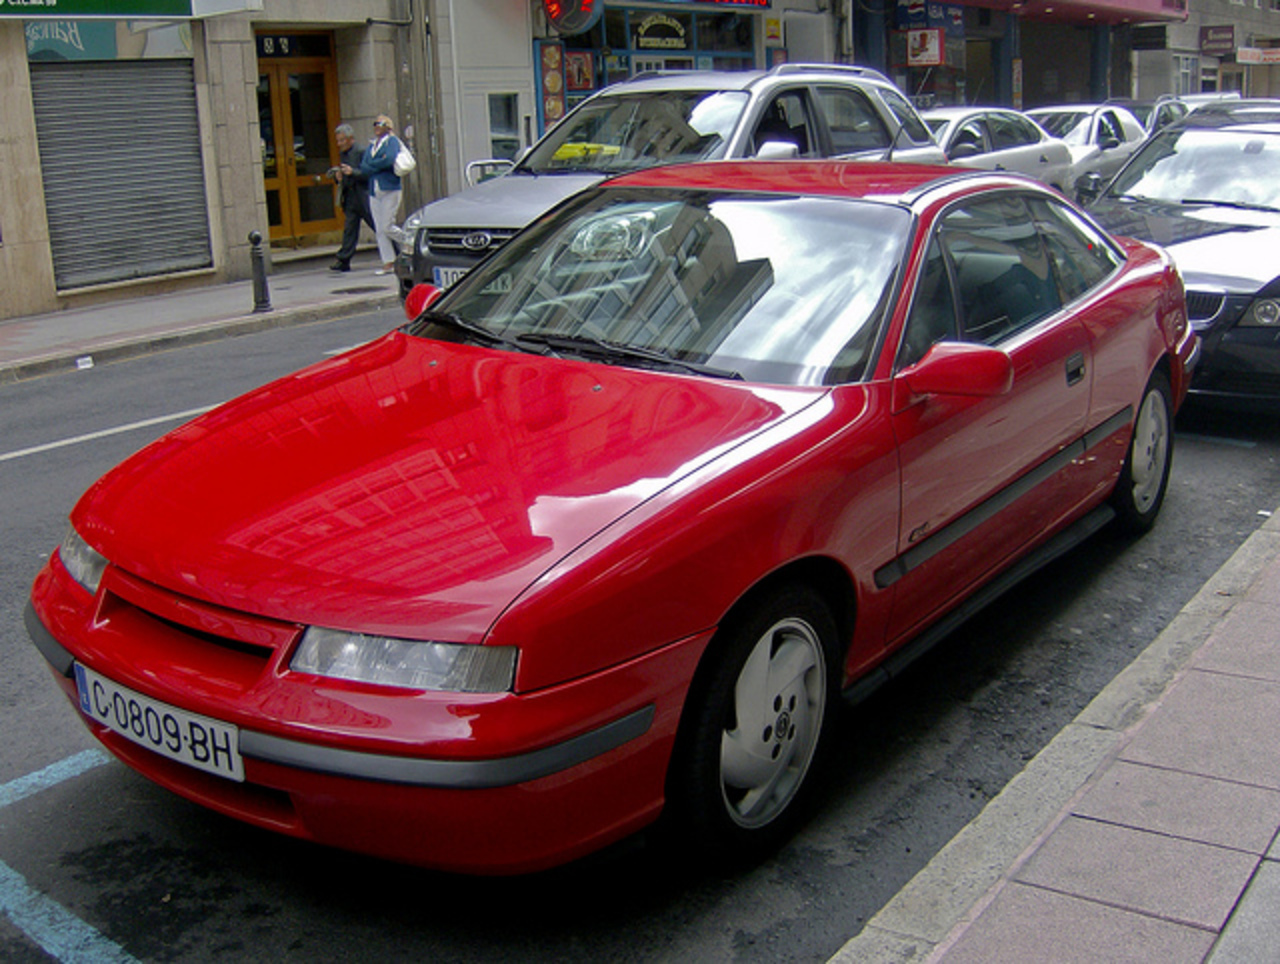 1994 Opel Calibra Turbo 4x4 | Flickr - Photo Sharing!